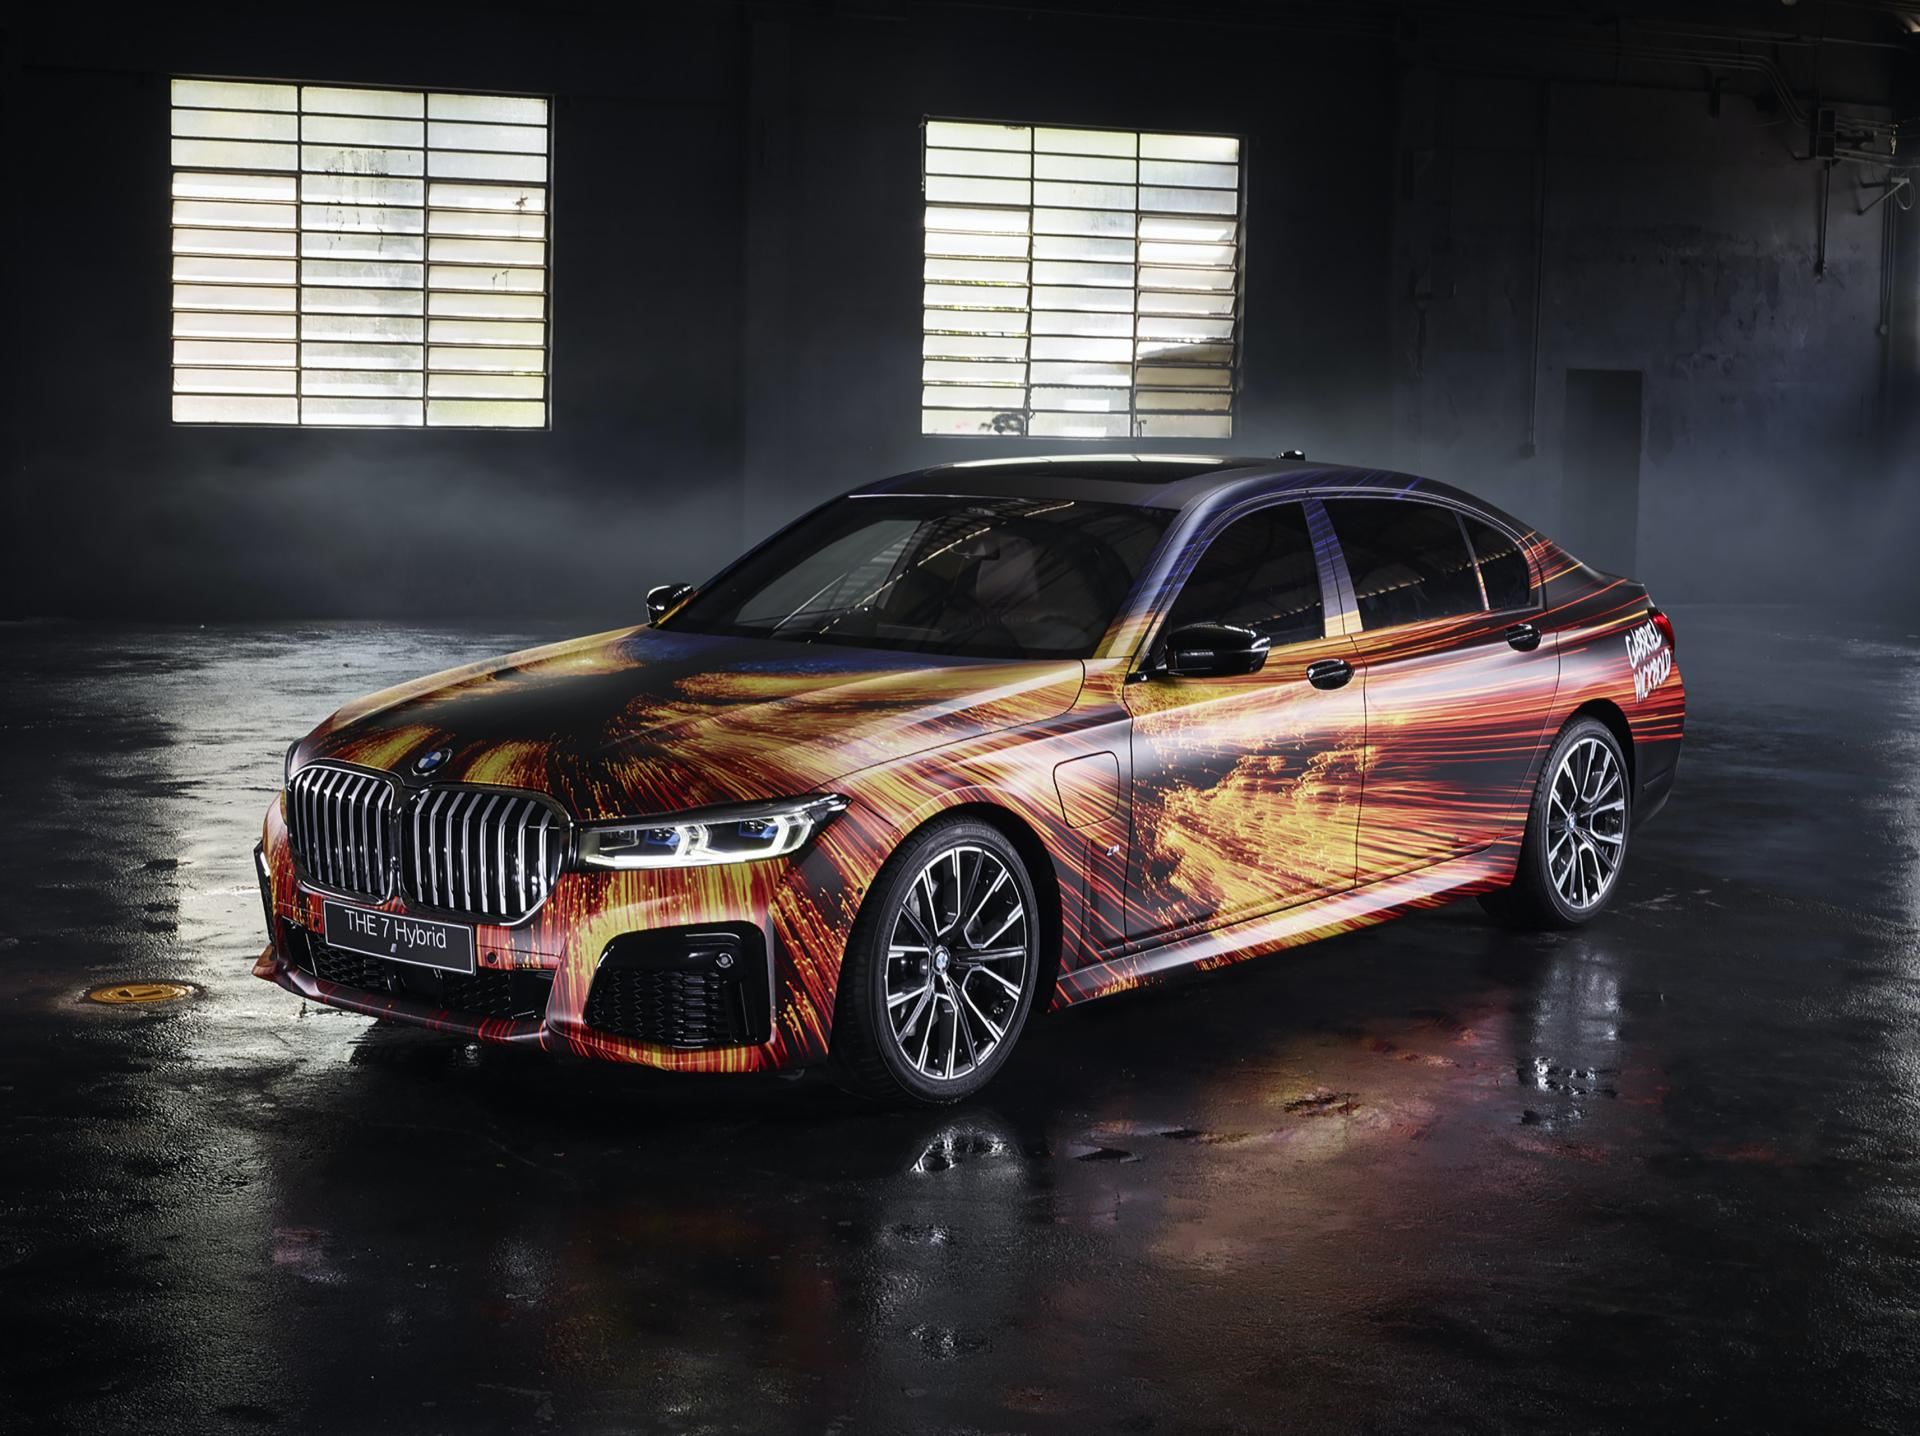 BMW-7-Series-745Le-M-Sport-Gabriel-Wickbold-Car-Art-9